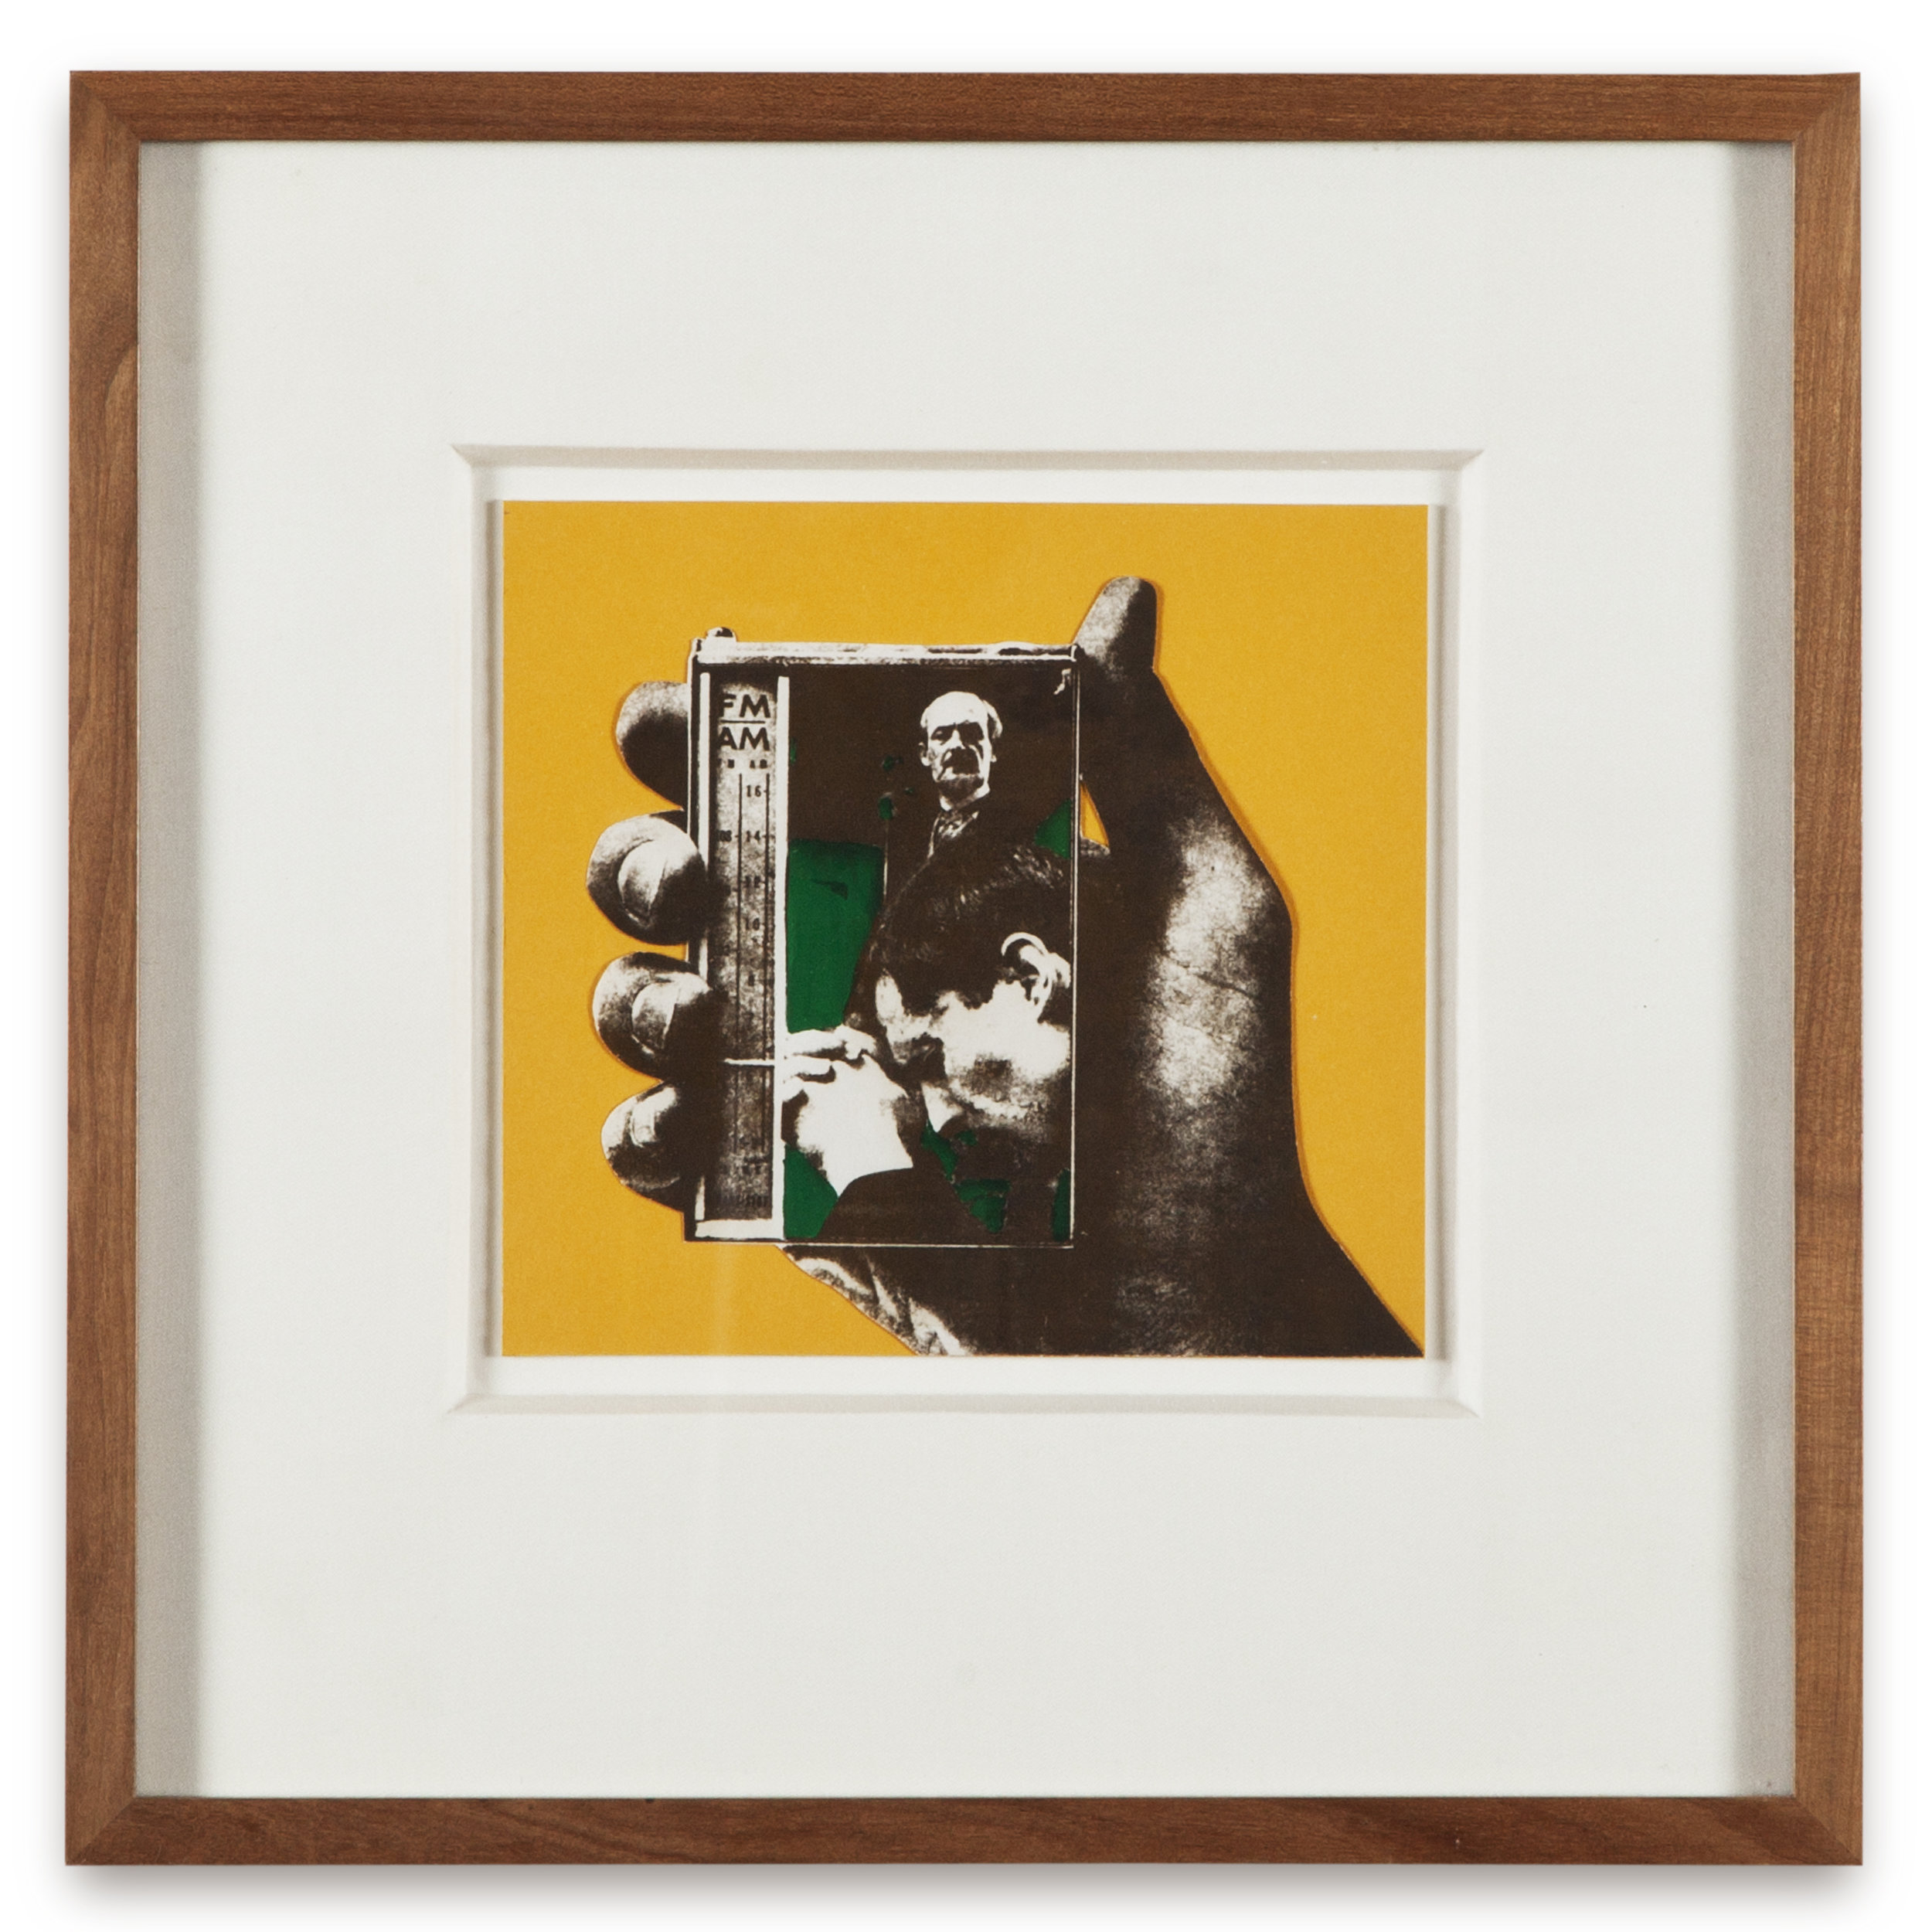 "Copy of ""Untitled #119"" , c. 1964-76, Verifax collage with acrylic, 6 x 6 1/2 inches, framed 12 x 12 1/2 inches"